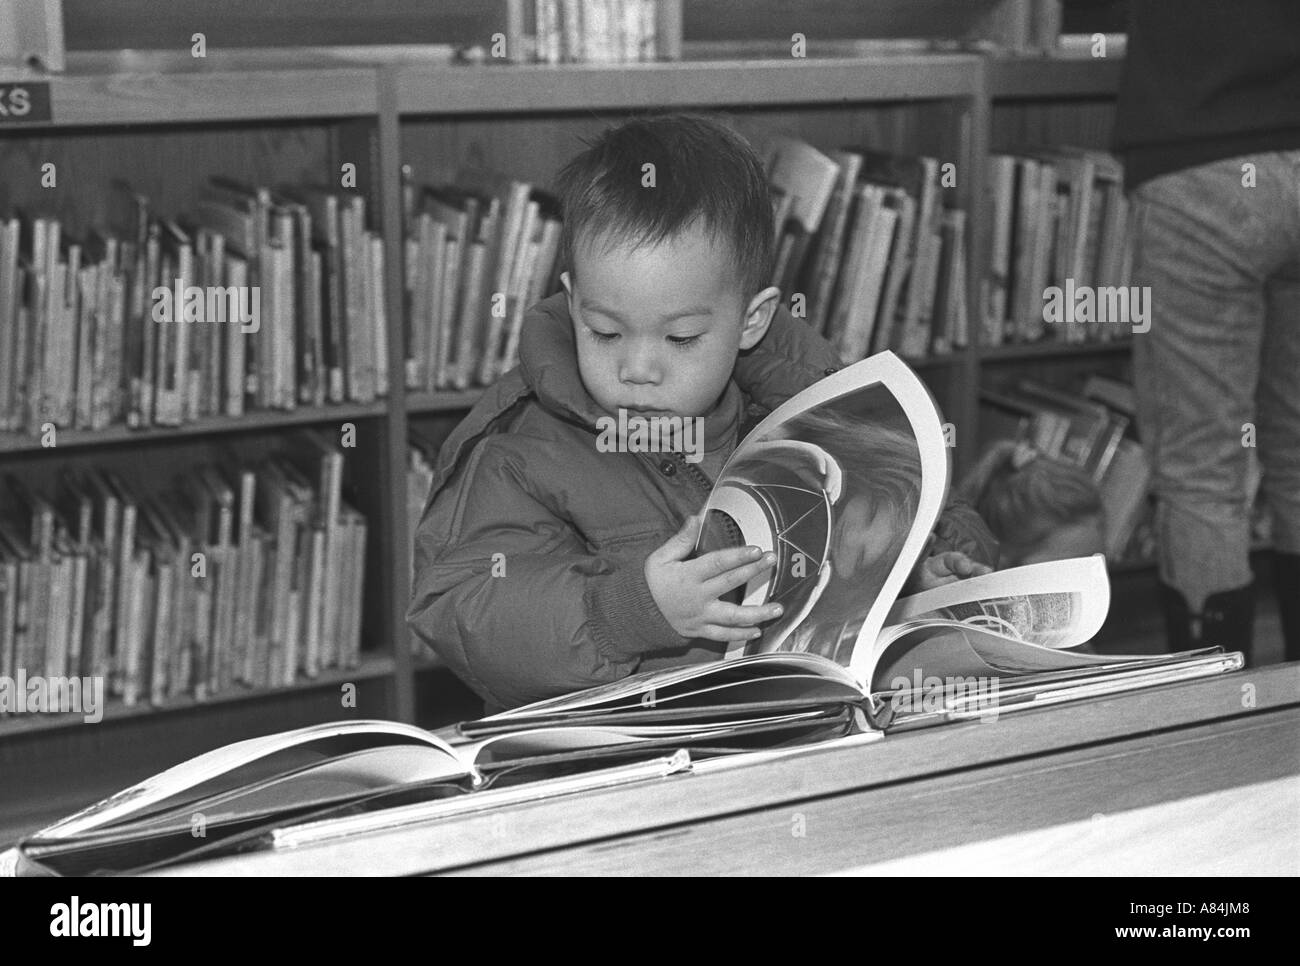 Young Chinese American child looks at a book in the New York Public Library Chinatown branch - Stock Image